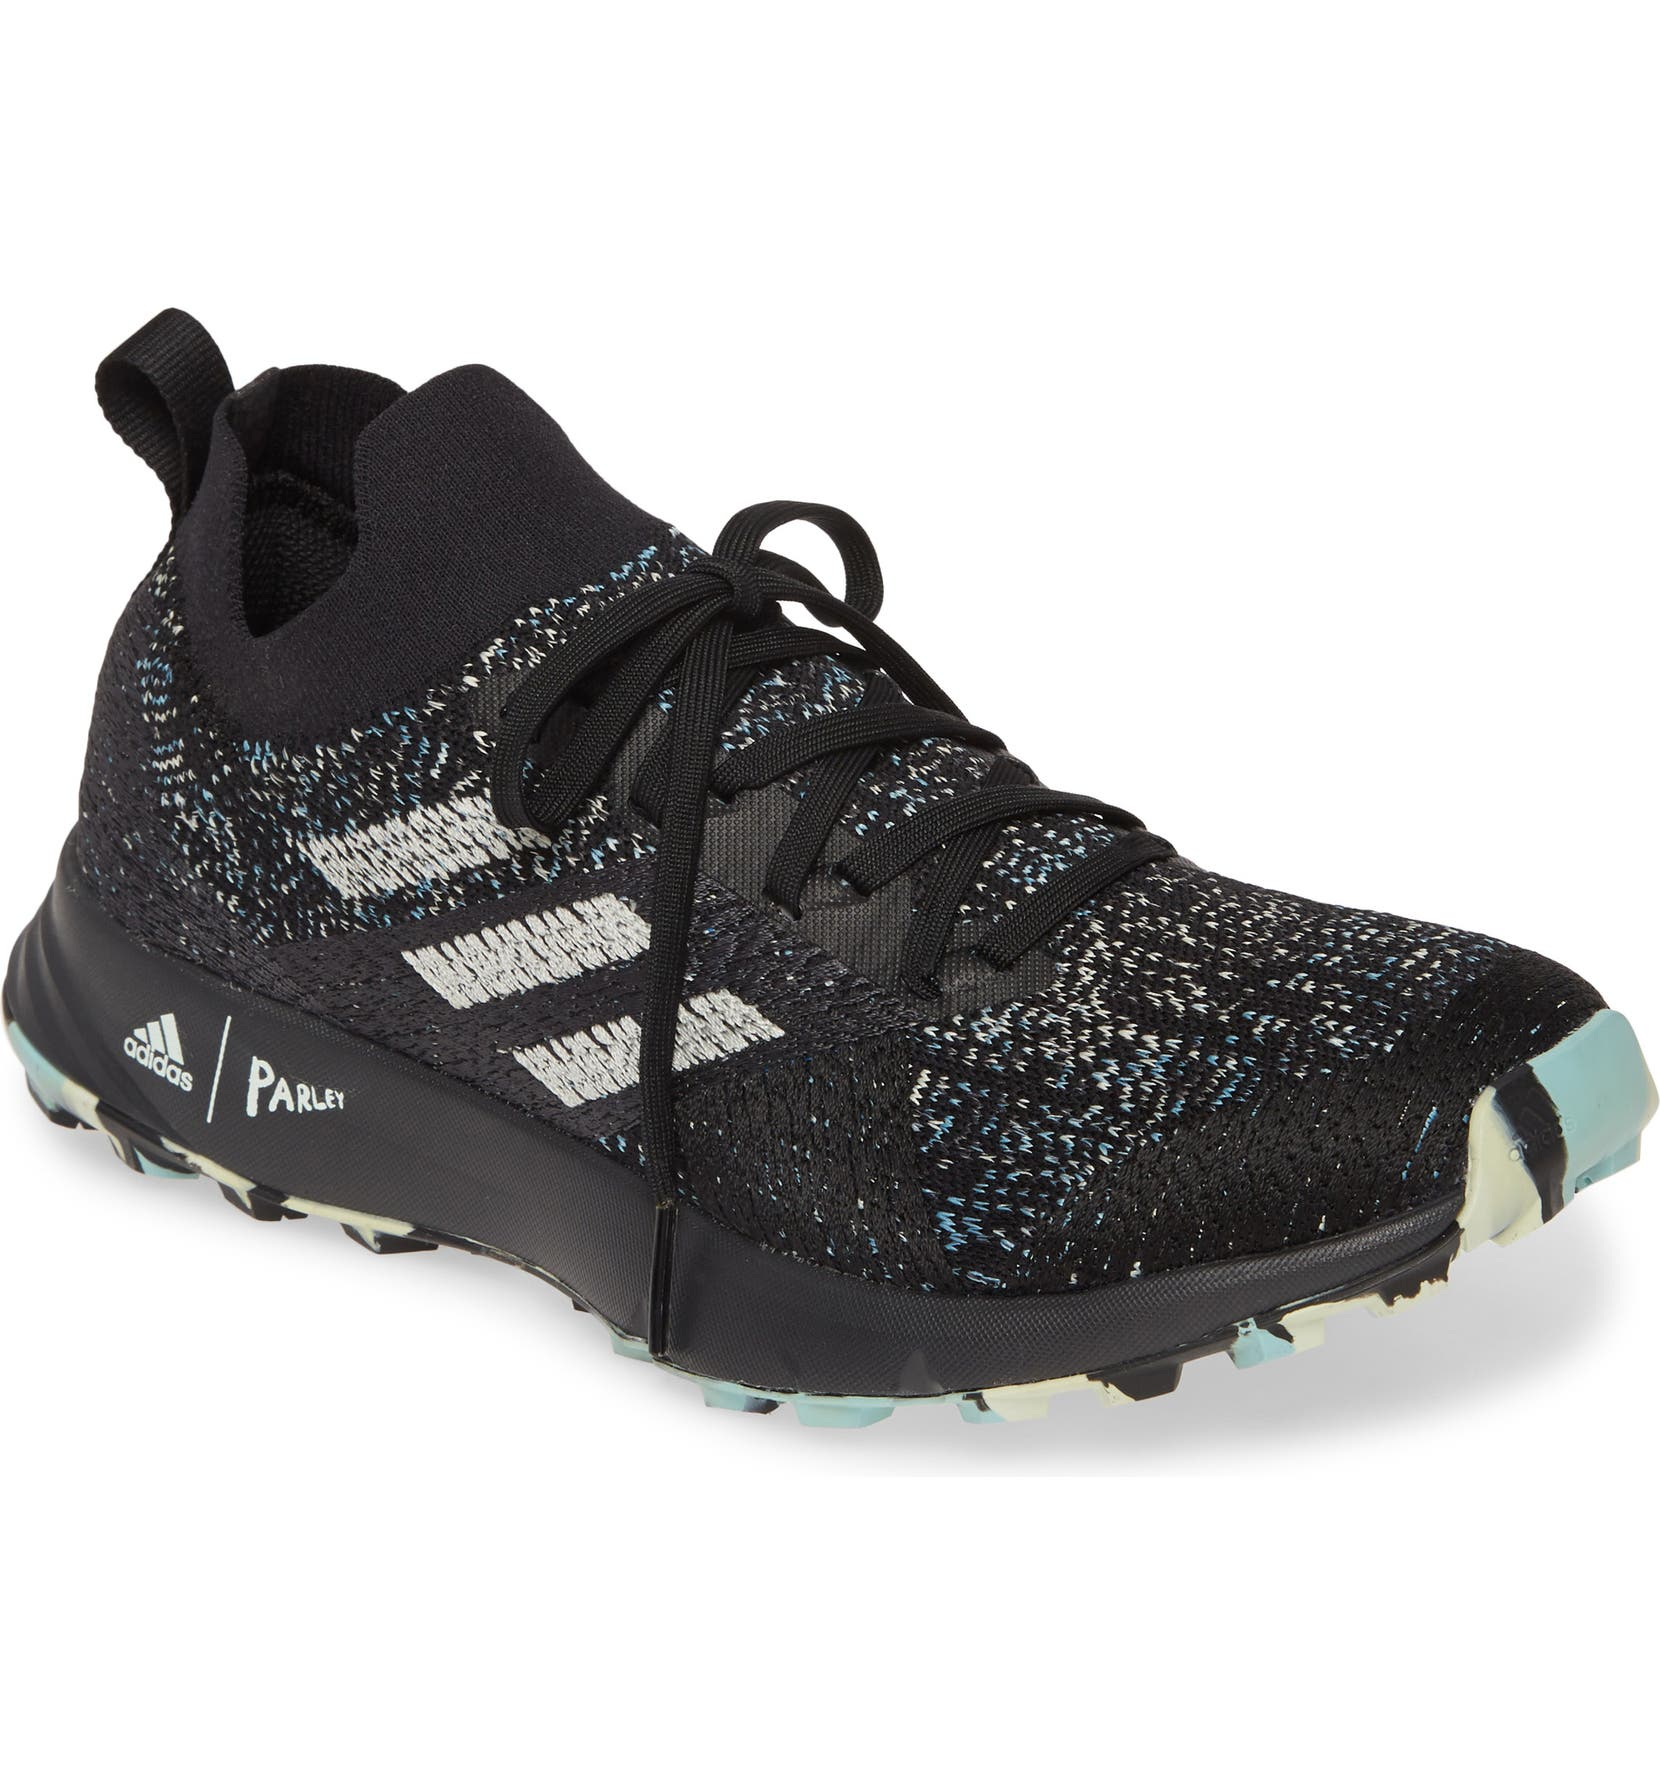 1b9702d1f268a Terrex Two Parley Trail Running Shoe